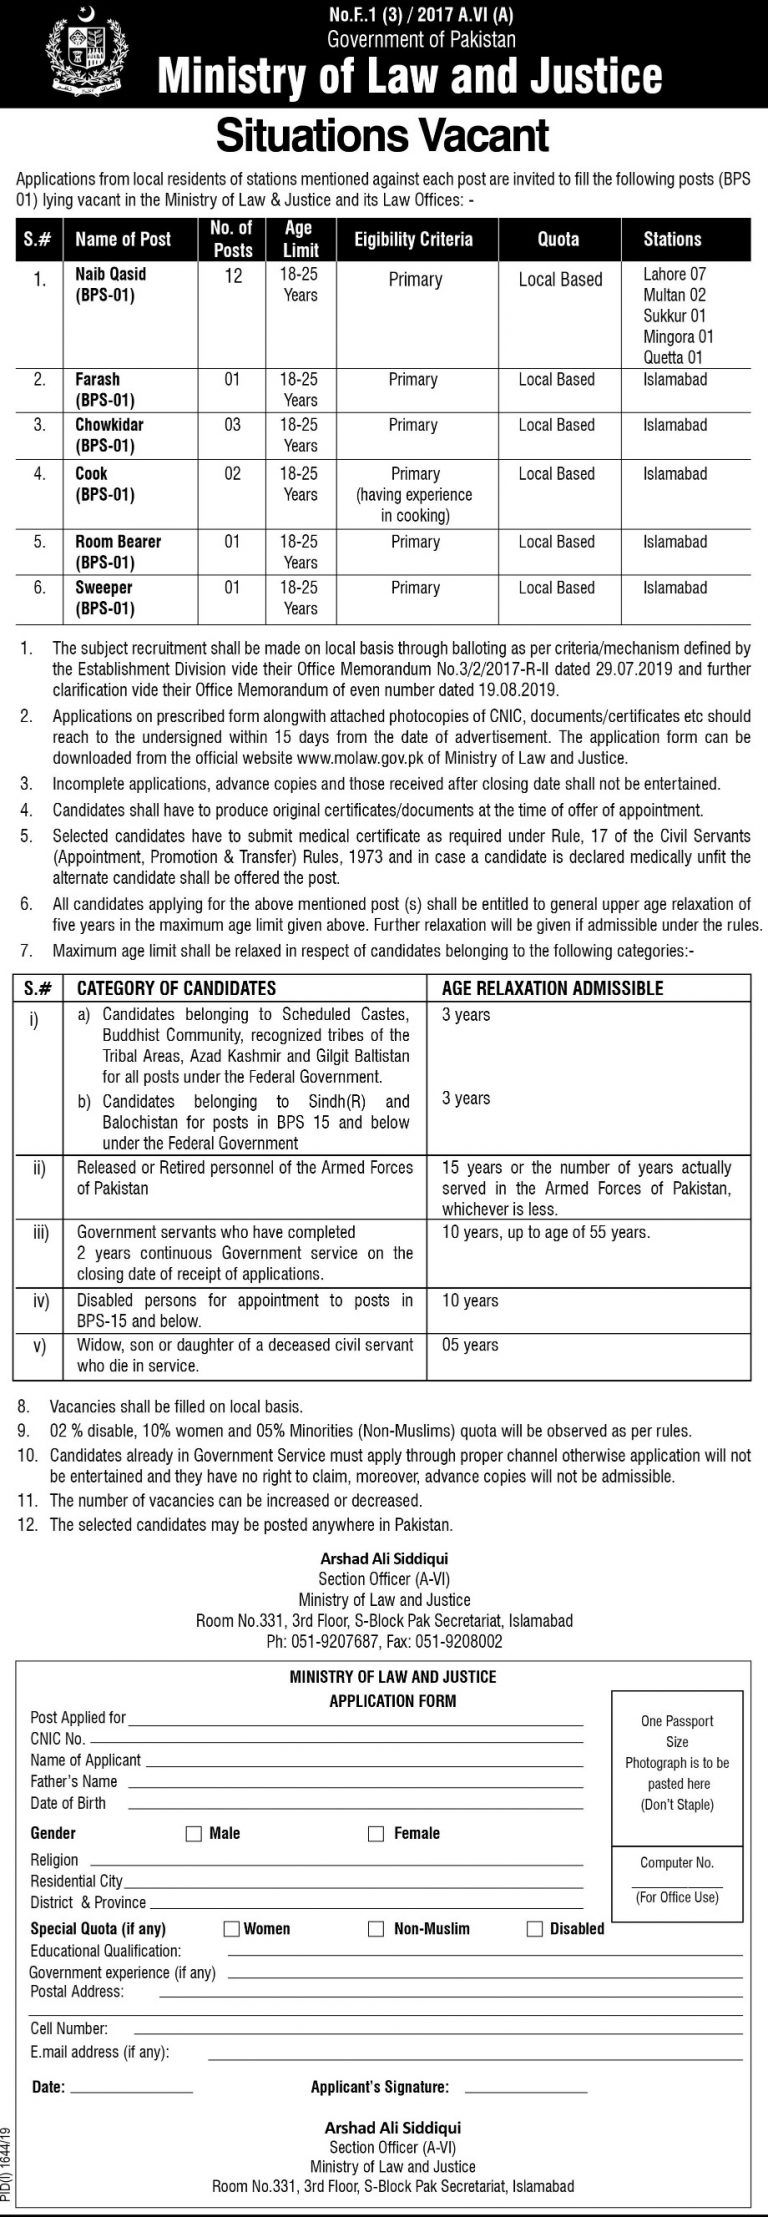 Ministry of Law and Justice Jobs 2019 Application Form Latest | www.molaw.gov.pk